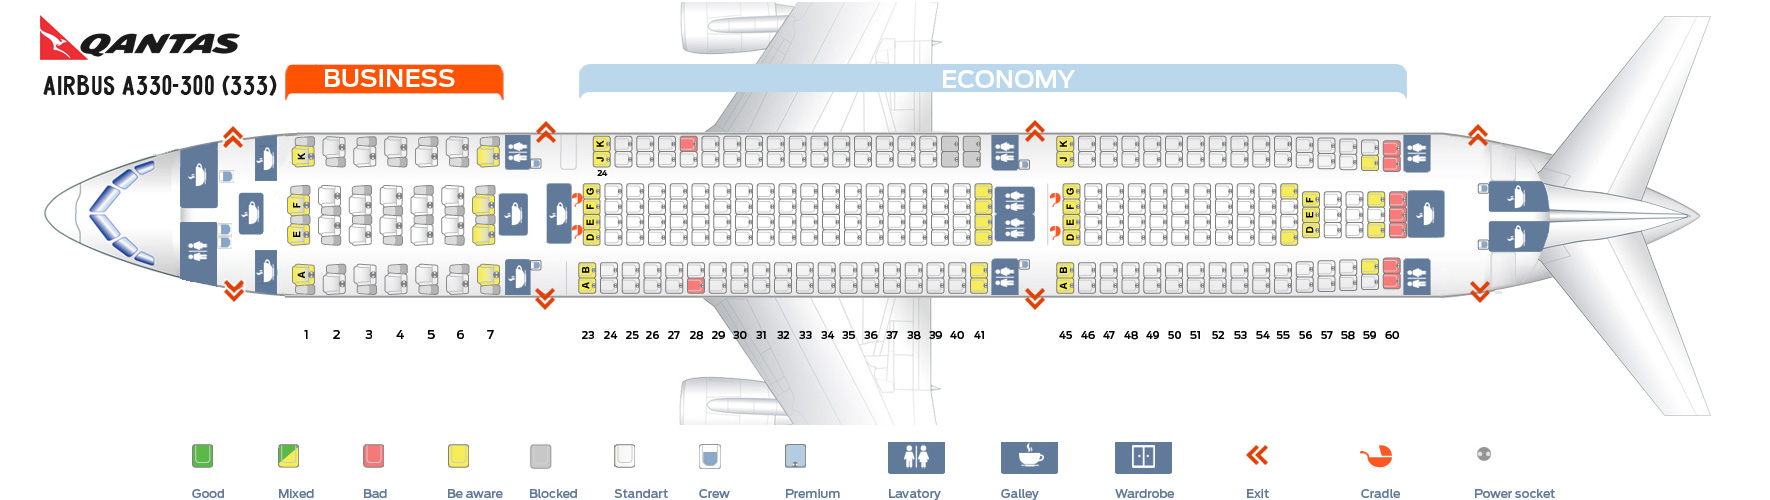 Seat Map Airbus A330-300 Qantas Airways